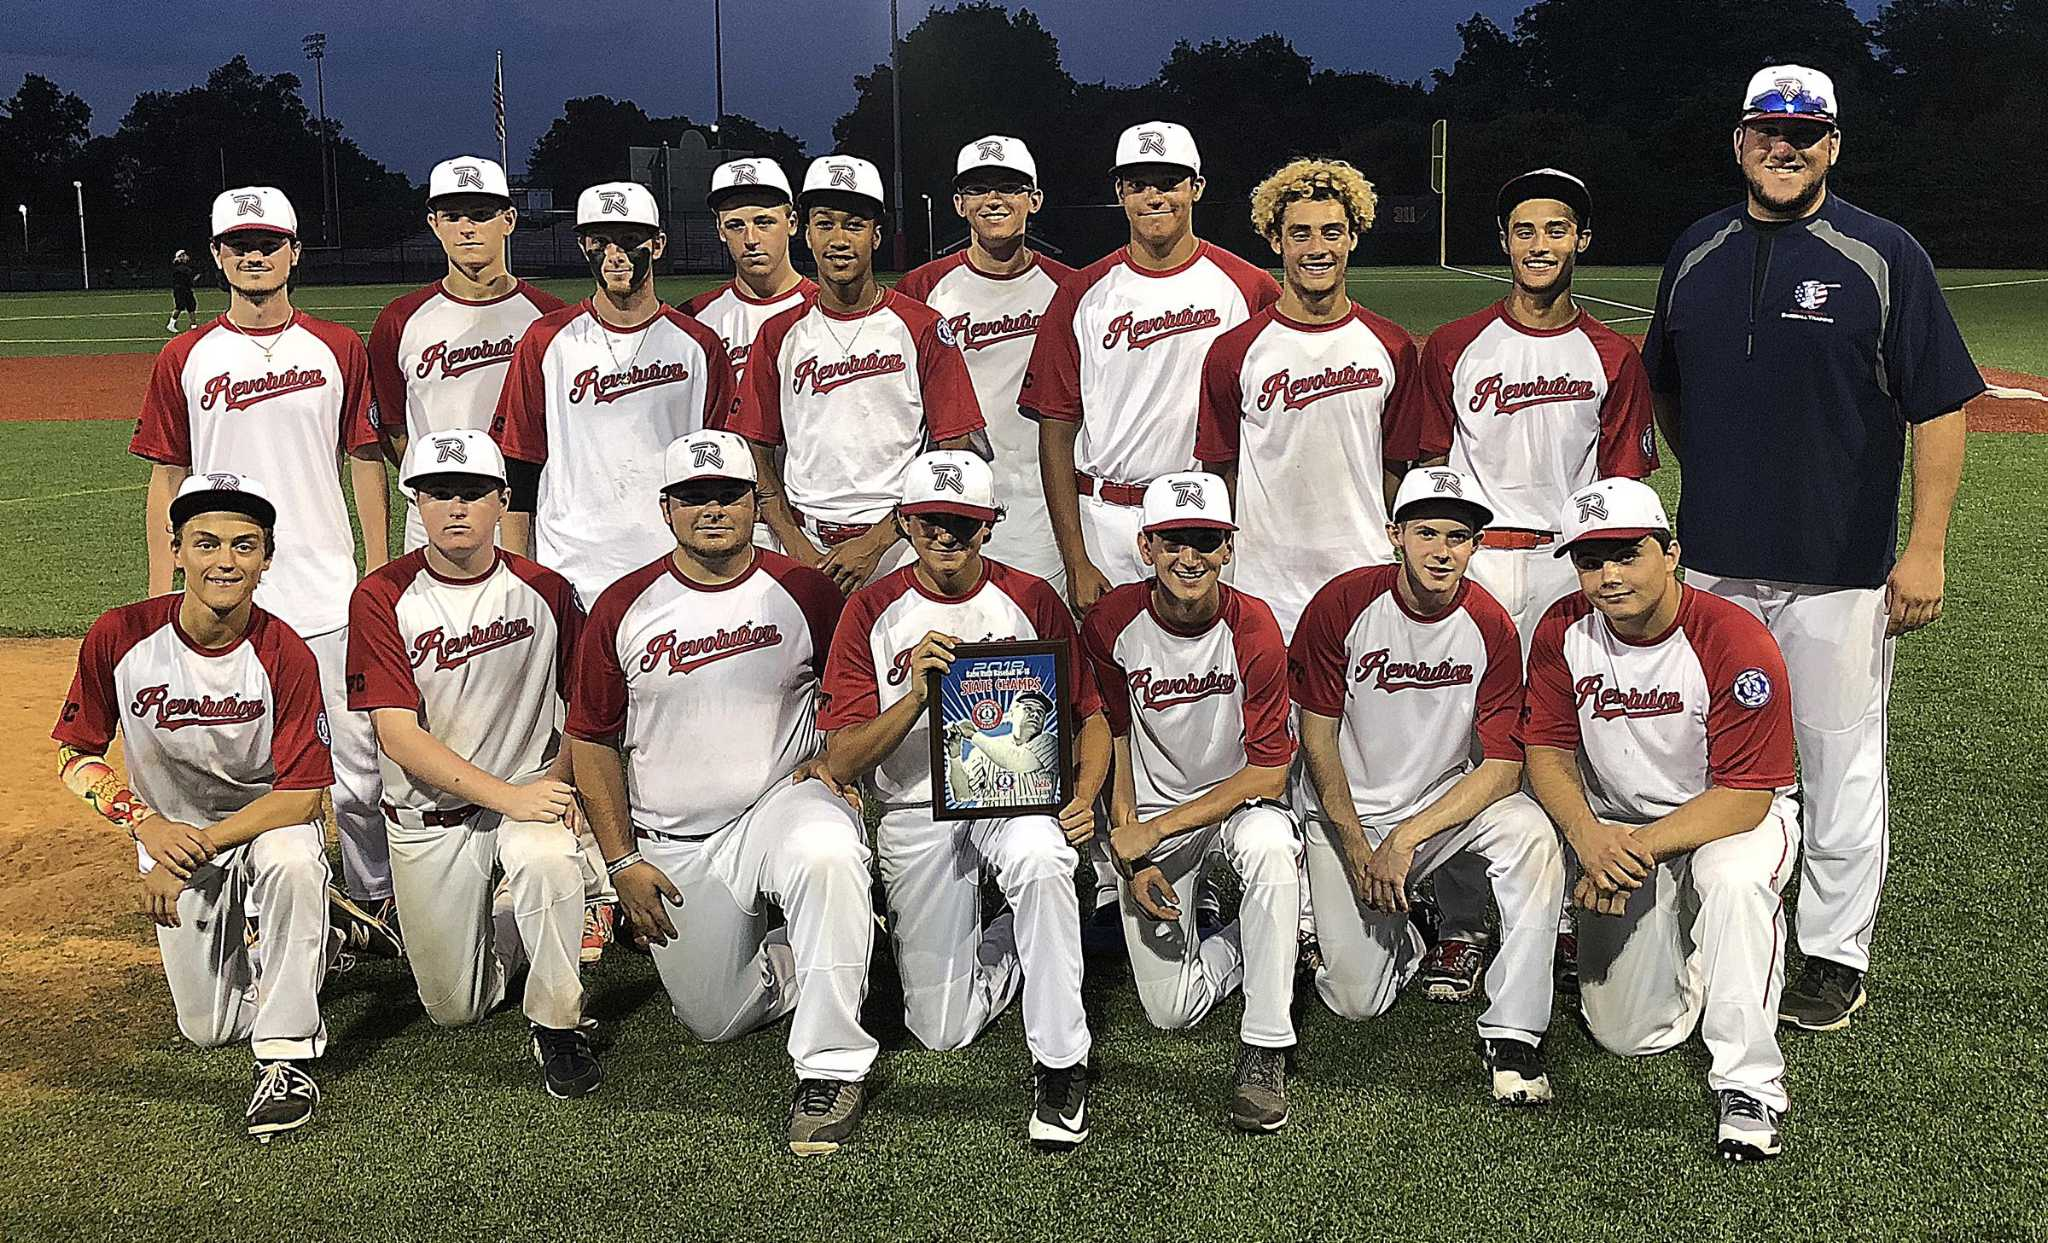 Norwalk 18s win second straight Babe Ruth state title - The Hour